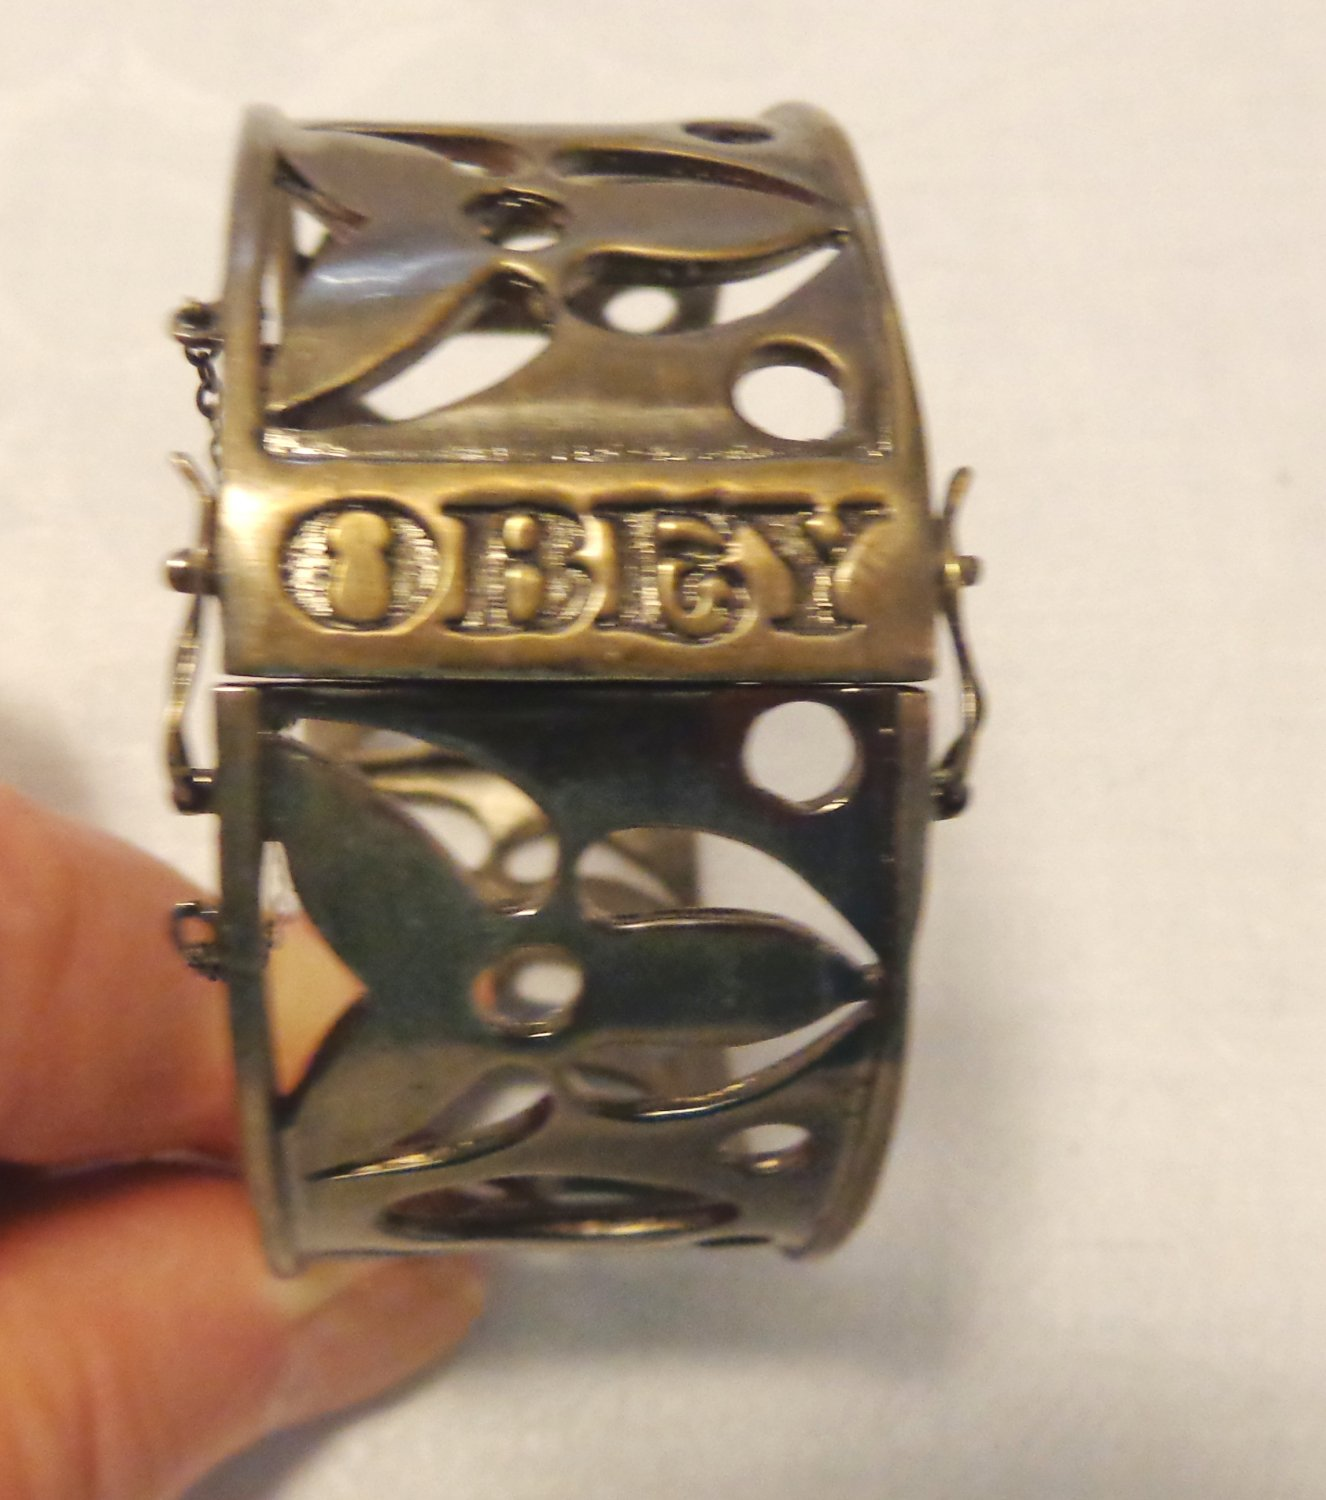 Hinged bangle slave bracelet steel OBEY for child or small person pre-owned ll3540